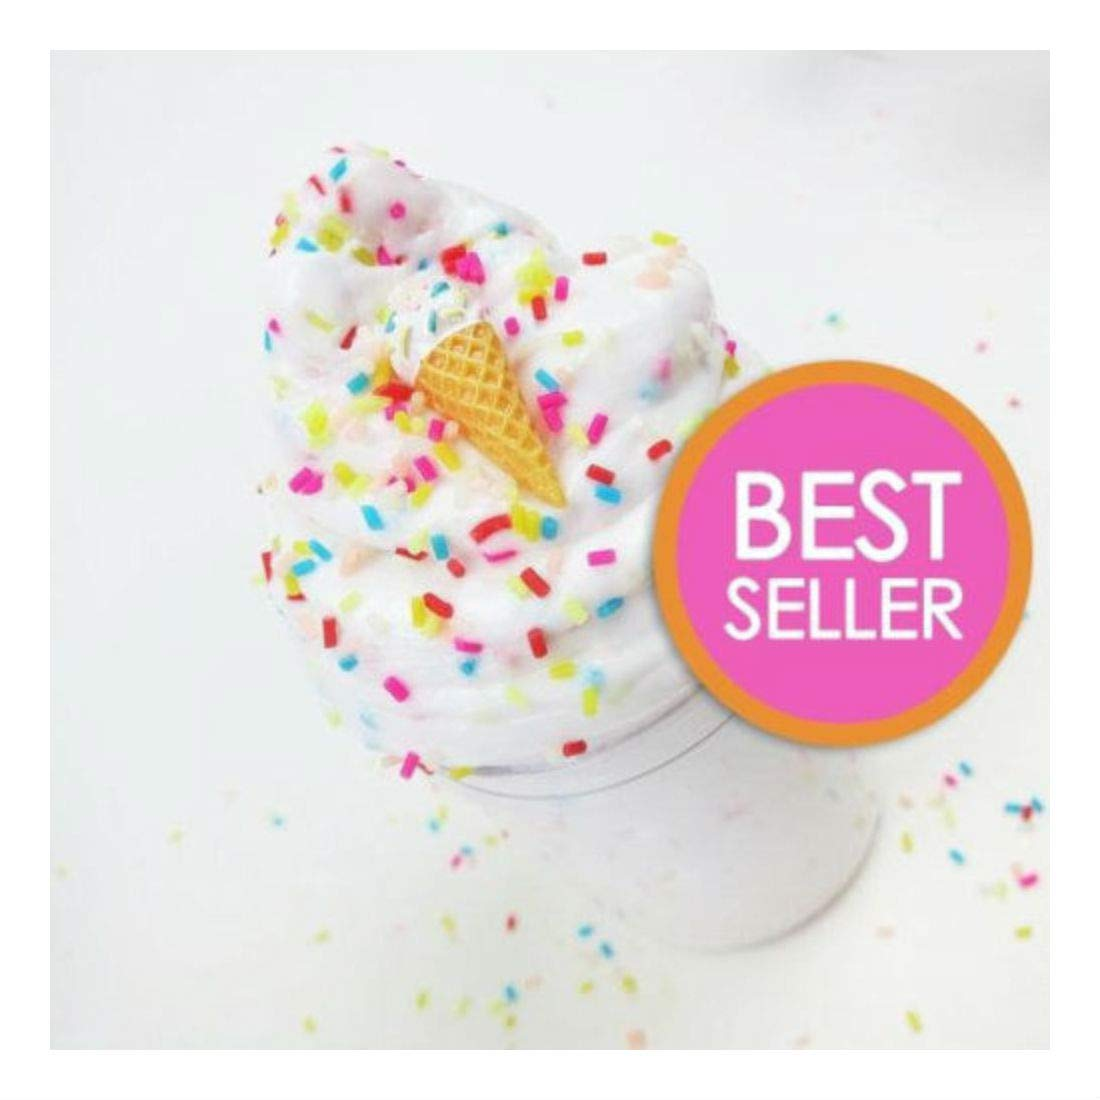 Unbranded 4oz Ice Cream Birthday Cake w/ Sprinkles & Charm - Scented Butter Slime (Daiso)